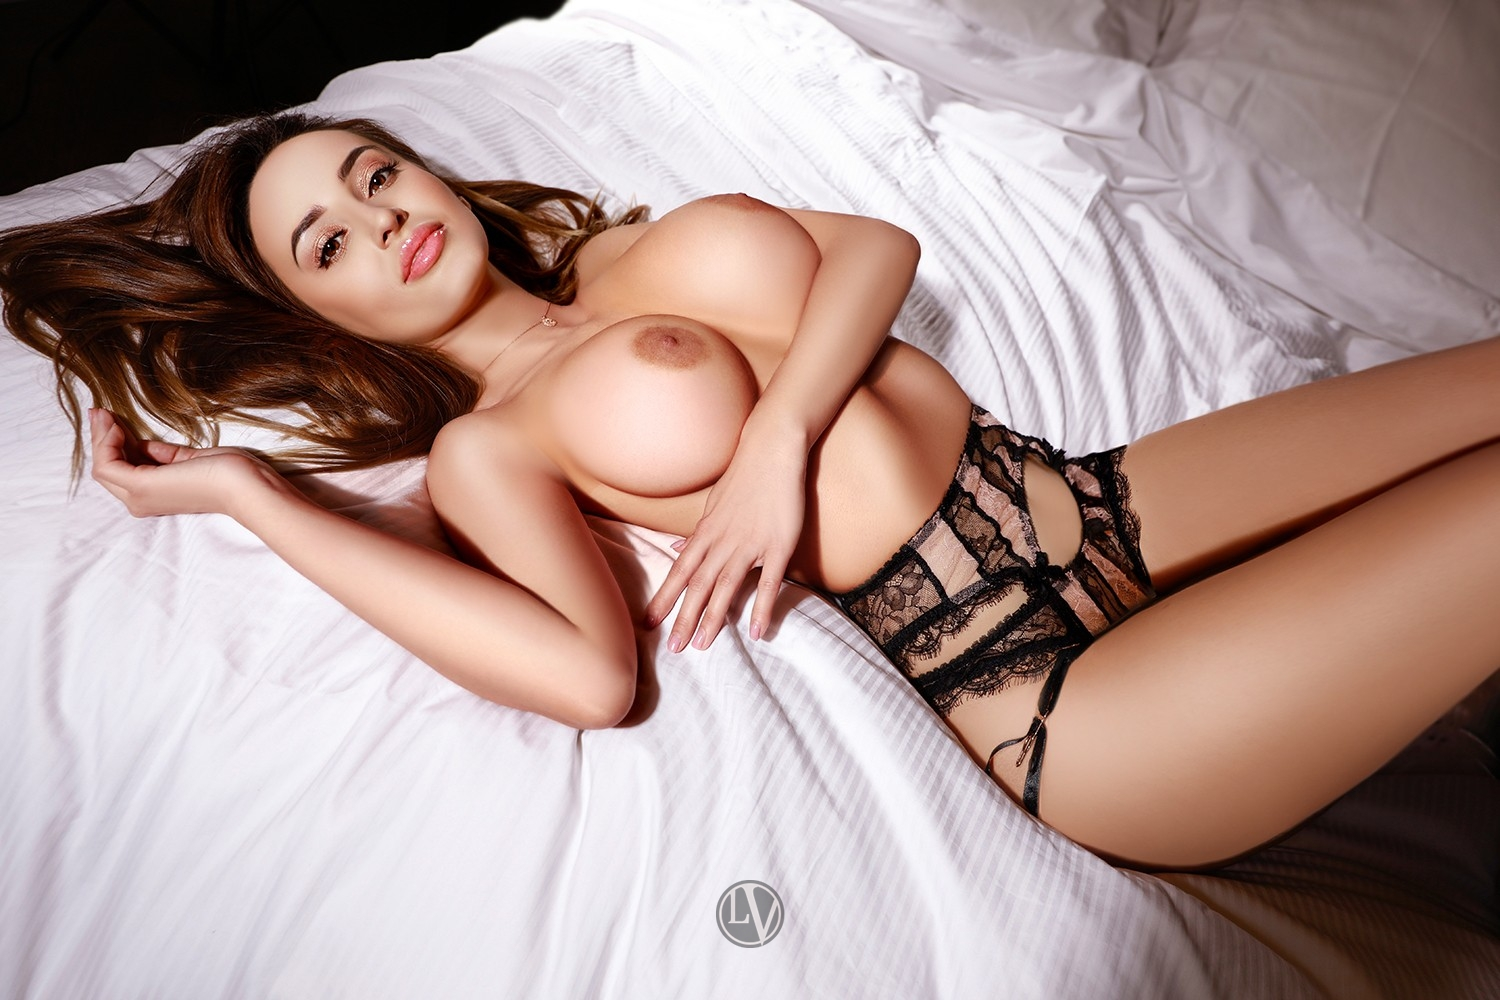 Topless Asia lying on the bed